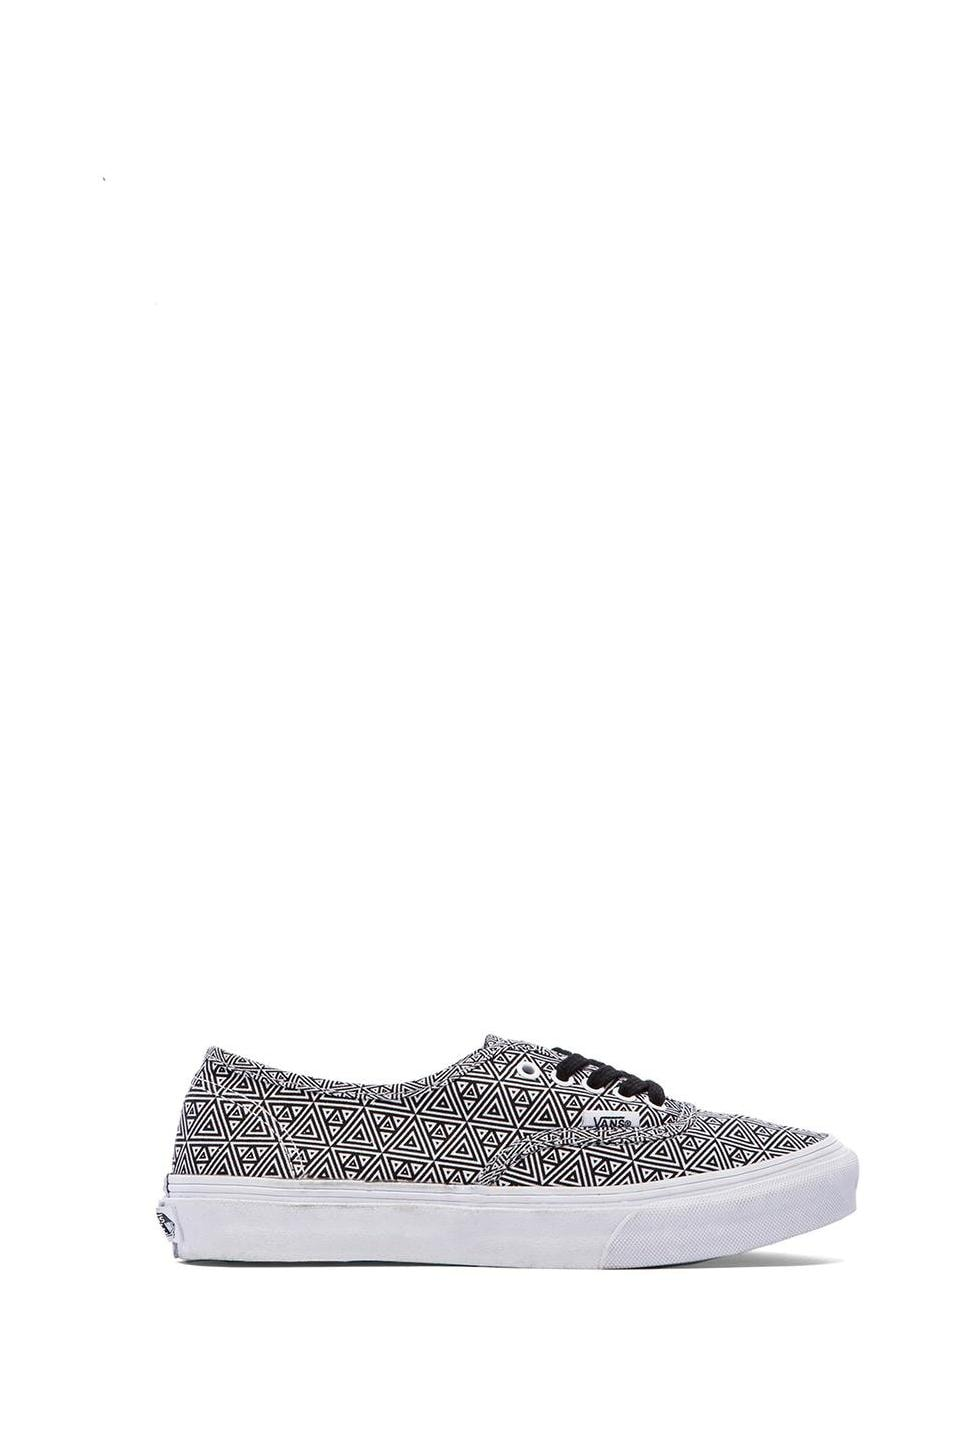 Vans Authentic Slim Sneaker in Geometric